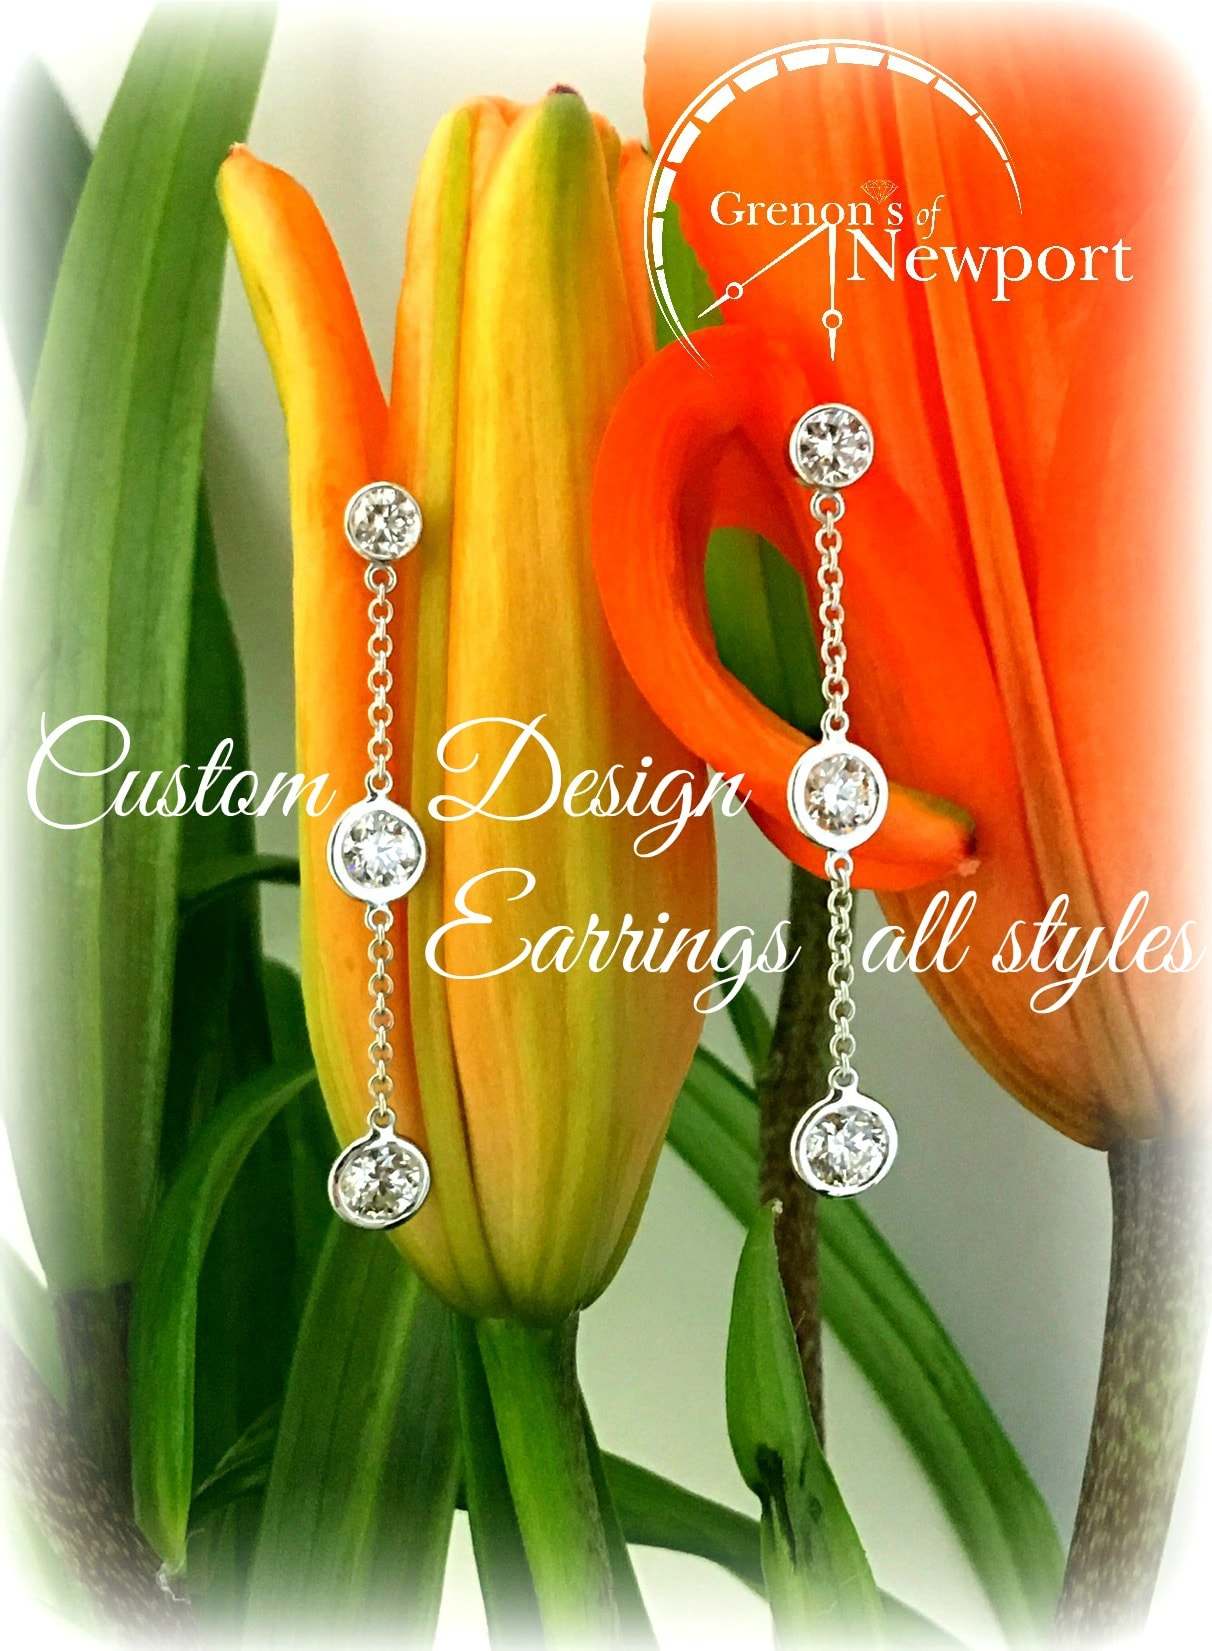 Grenons-Of-Newport-Custom-design-earrings-all-styles-min